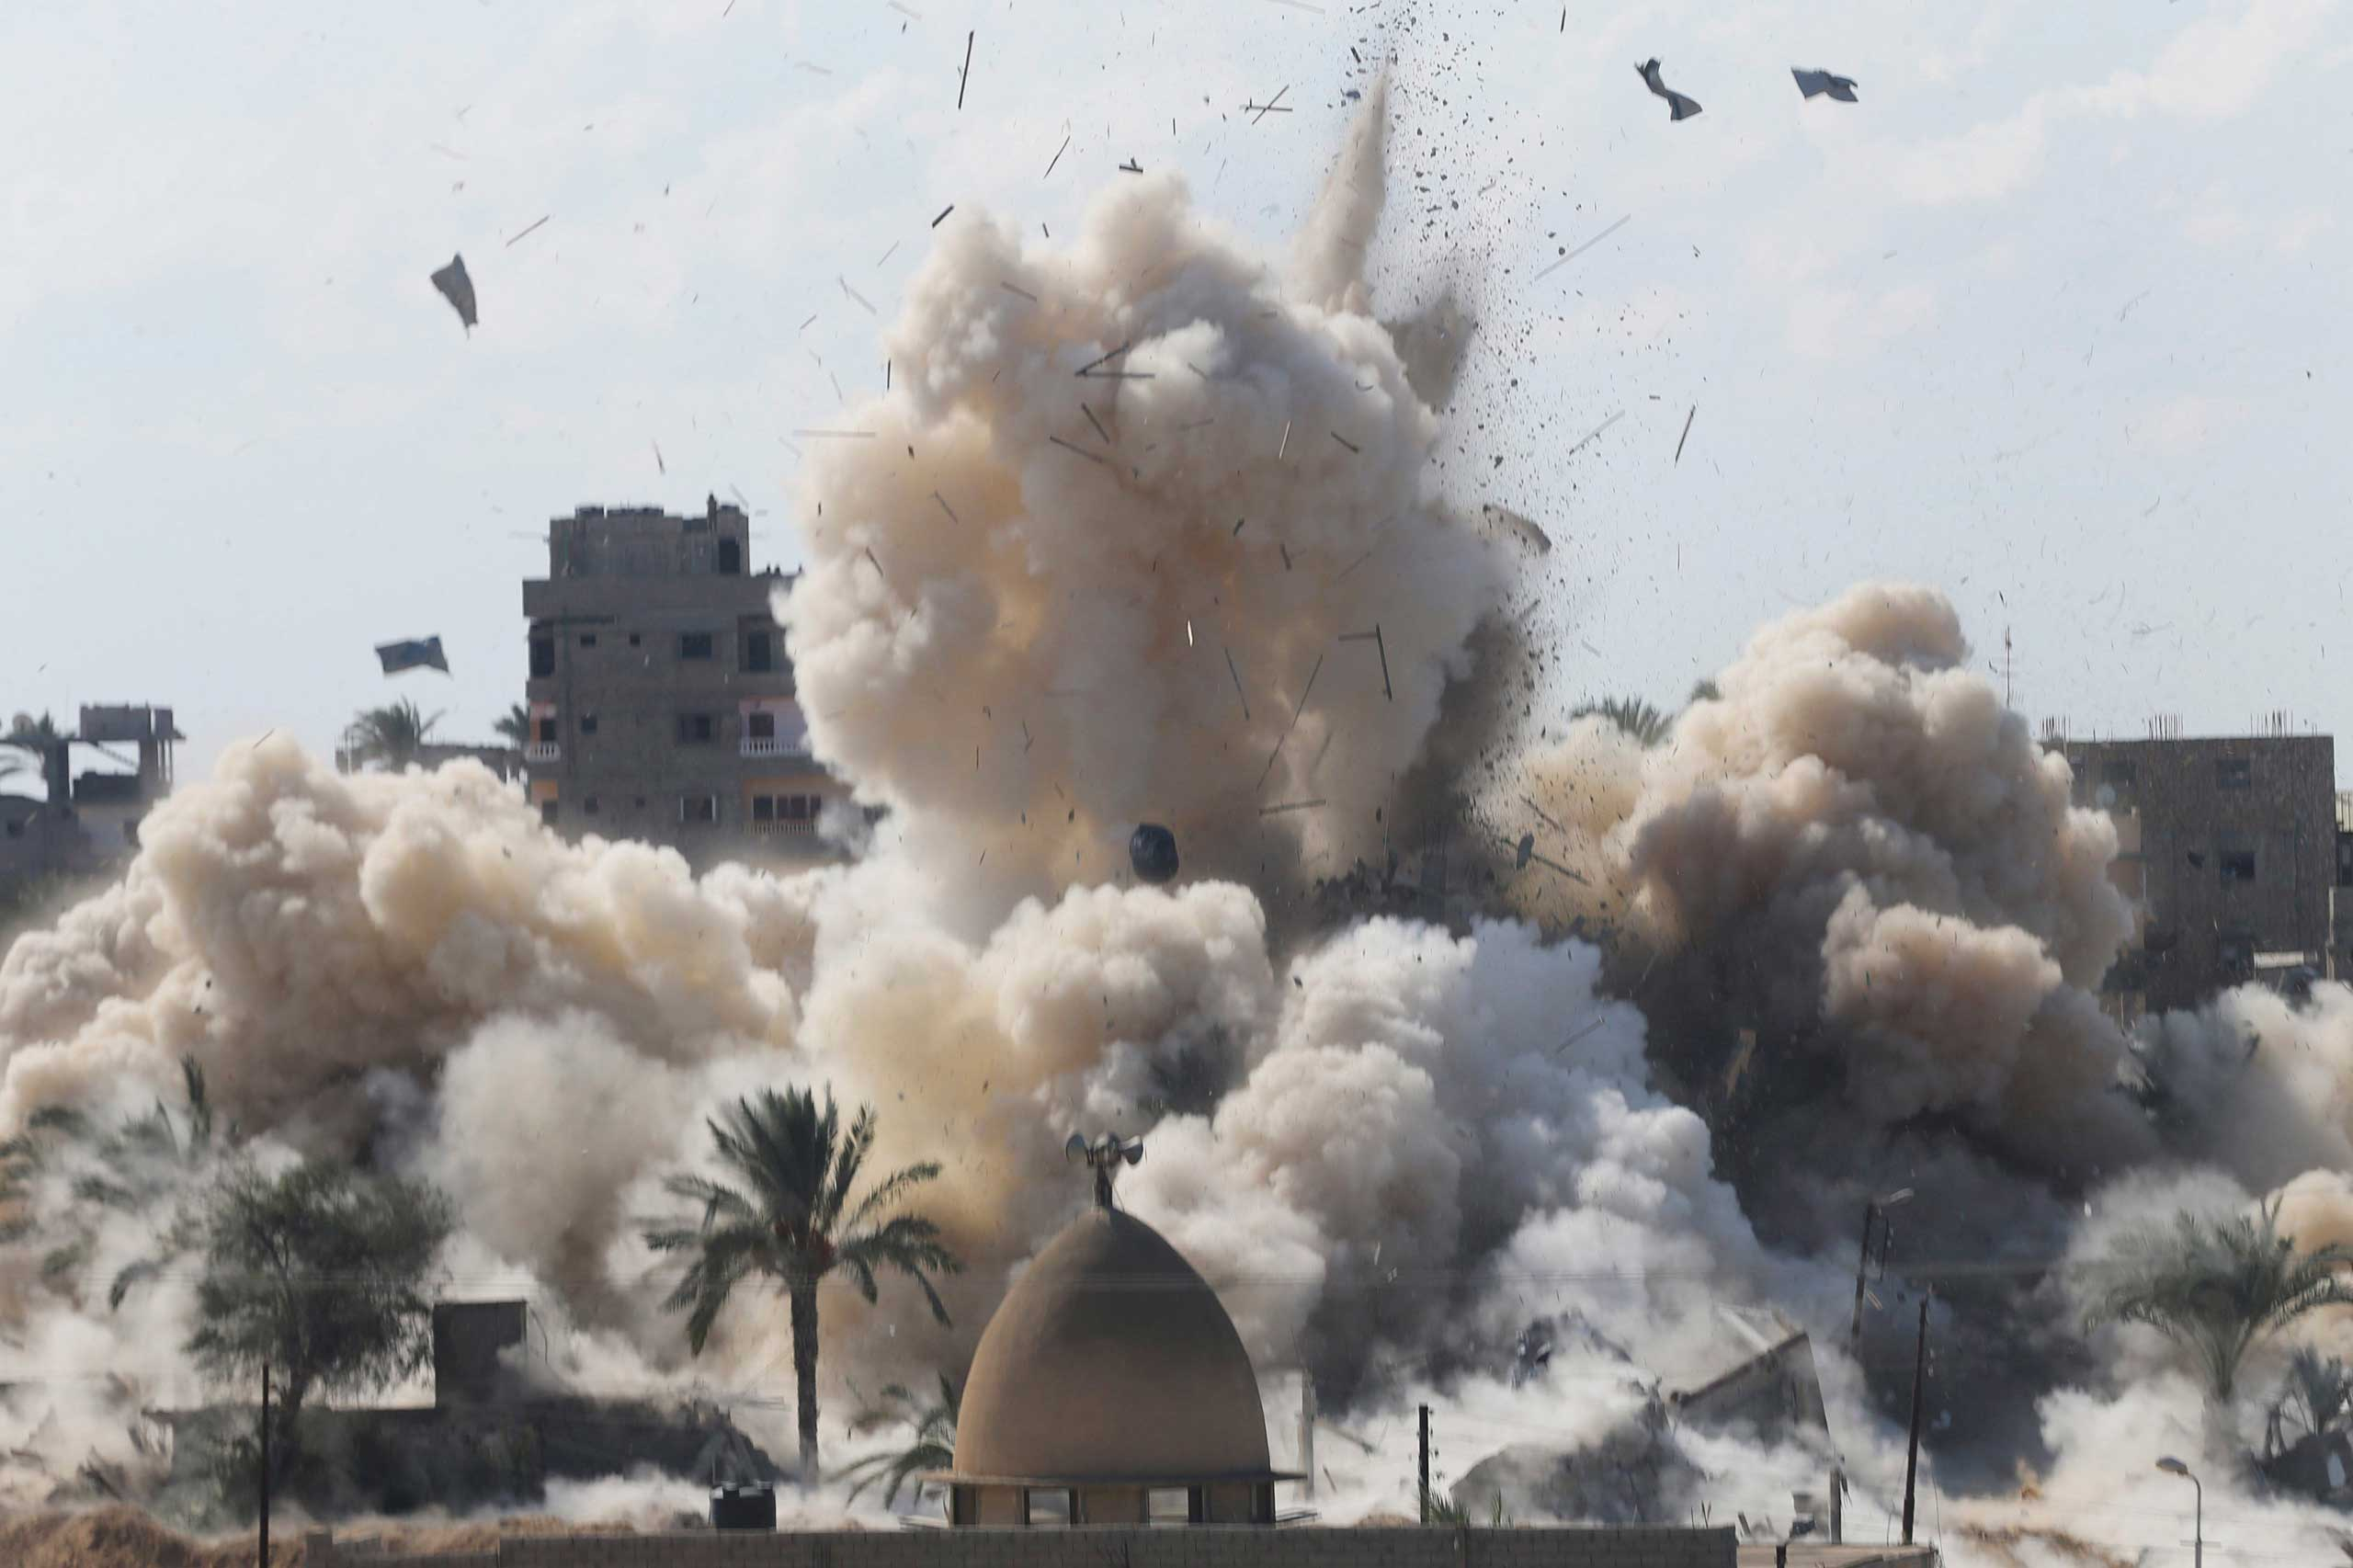 Oct. 29, 2014. Smoke rises after a house was blown up during a military operation by Egyptian security forces in the Egyptian city of Rafah, near the border with southern Gaza Strip. At least 33 Egyptian security personnel were killed on Friday in the Sinai Peninsula bordering Israel and Gaza, in an attack on a checkpoint that bore the marks of assaults claimed by Egypt's most active militant group Ansar Bayt al-Maqdis.